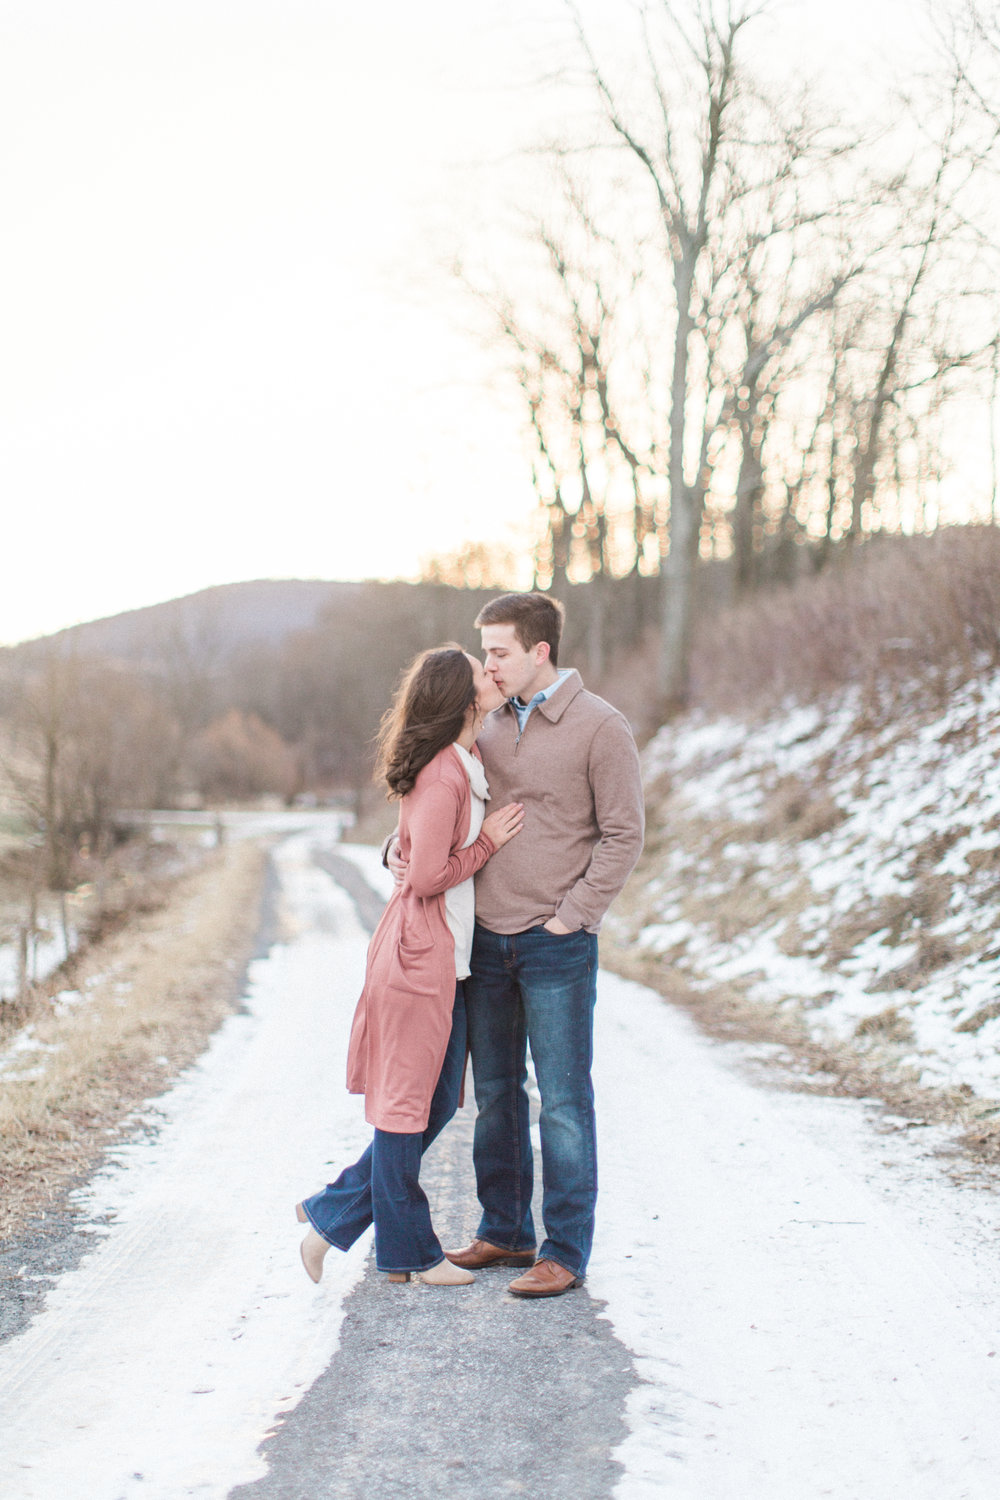 Abigail_Jill_Photography_Maryland_Engagement_Farm_Emily_Justin11.jpg